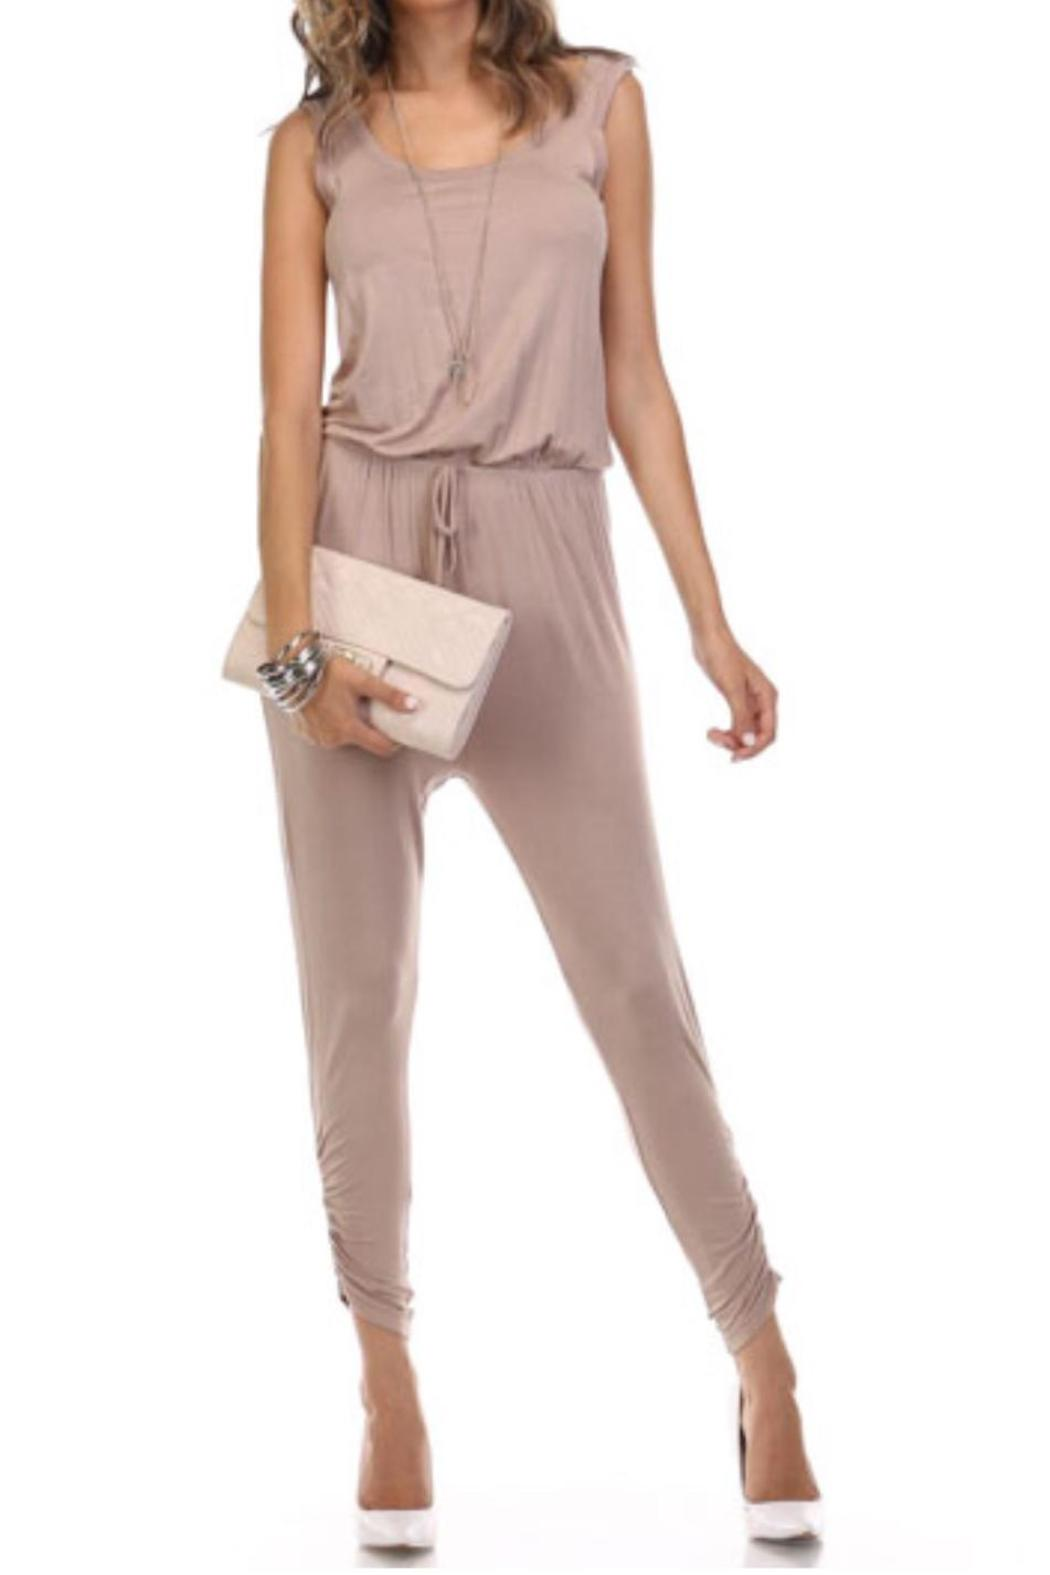 Heart U0026 Hips Solid Capri Jumpsuit From California By Last Call Fashion U2014 Shoptiques